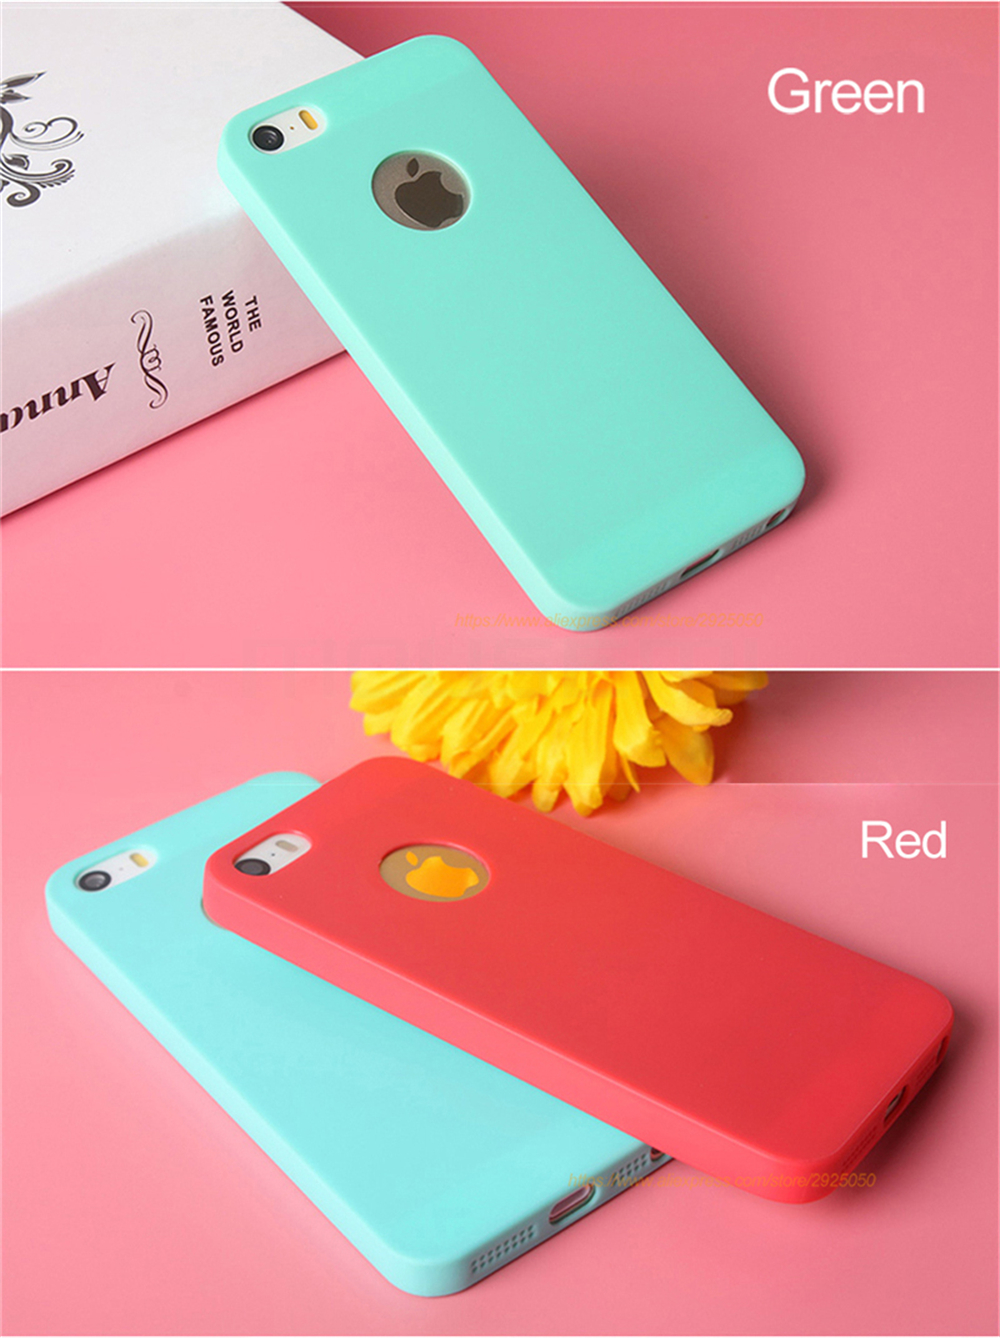 MOUSEMI Phone Cases Silicone 5S se For iPhone Case Candy For iPhone 5s se 5 Case Cute Silicone Pink Soft Luxury Matte Coque 5s 5 (11)